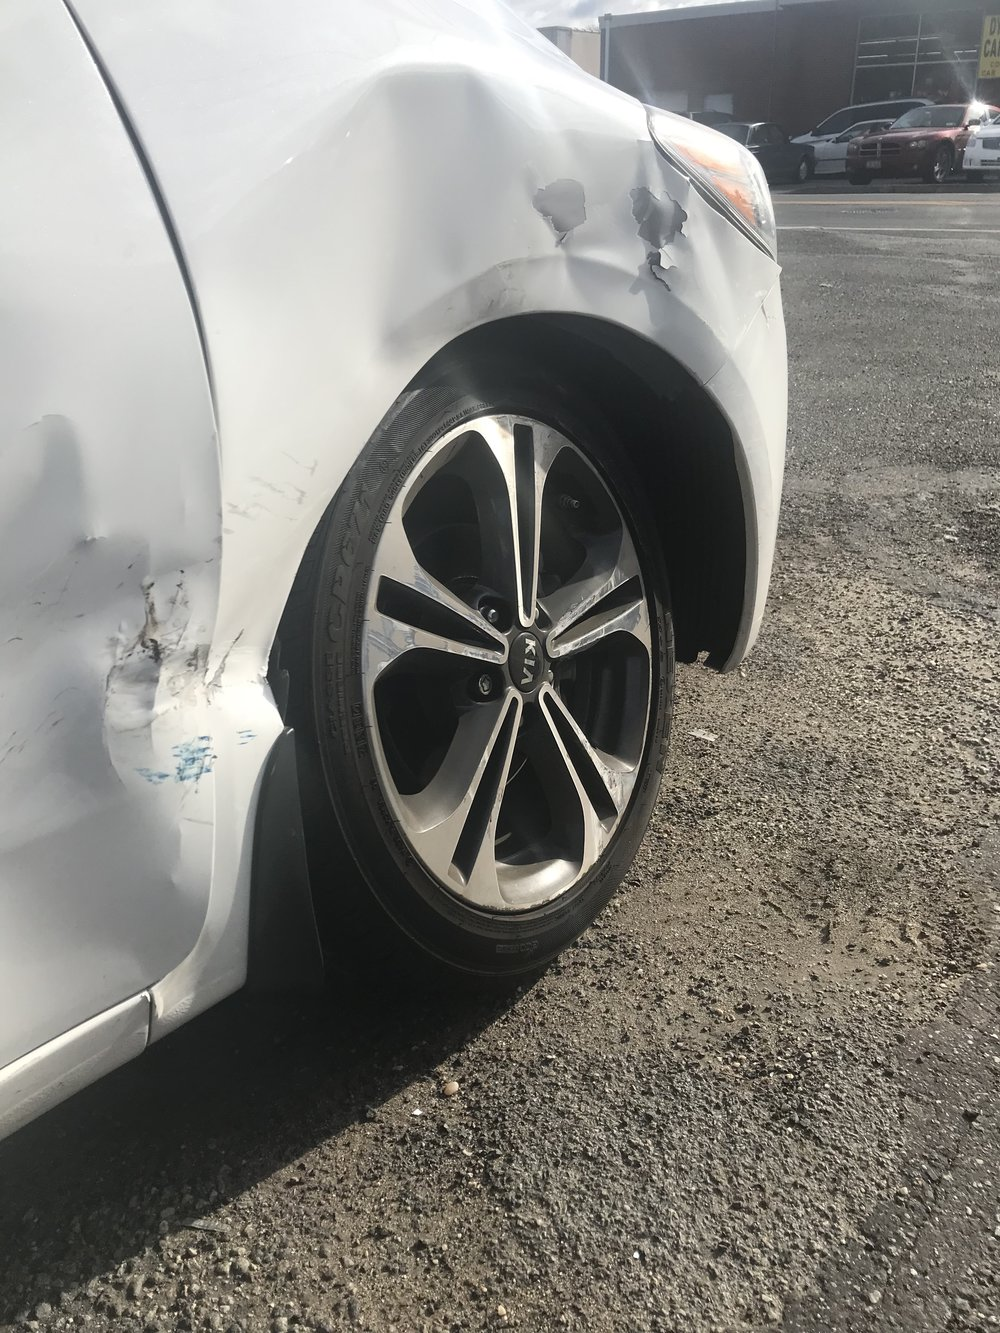 Since the wheel caved in, I was unable to drive my car